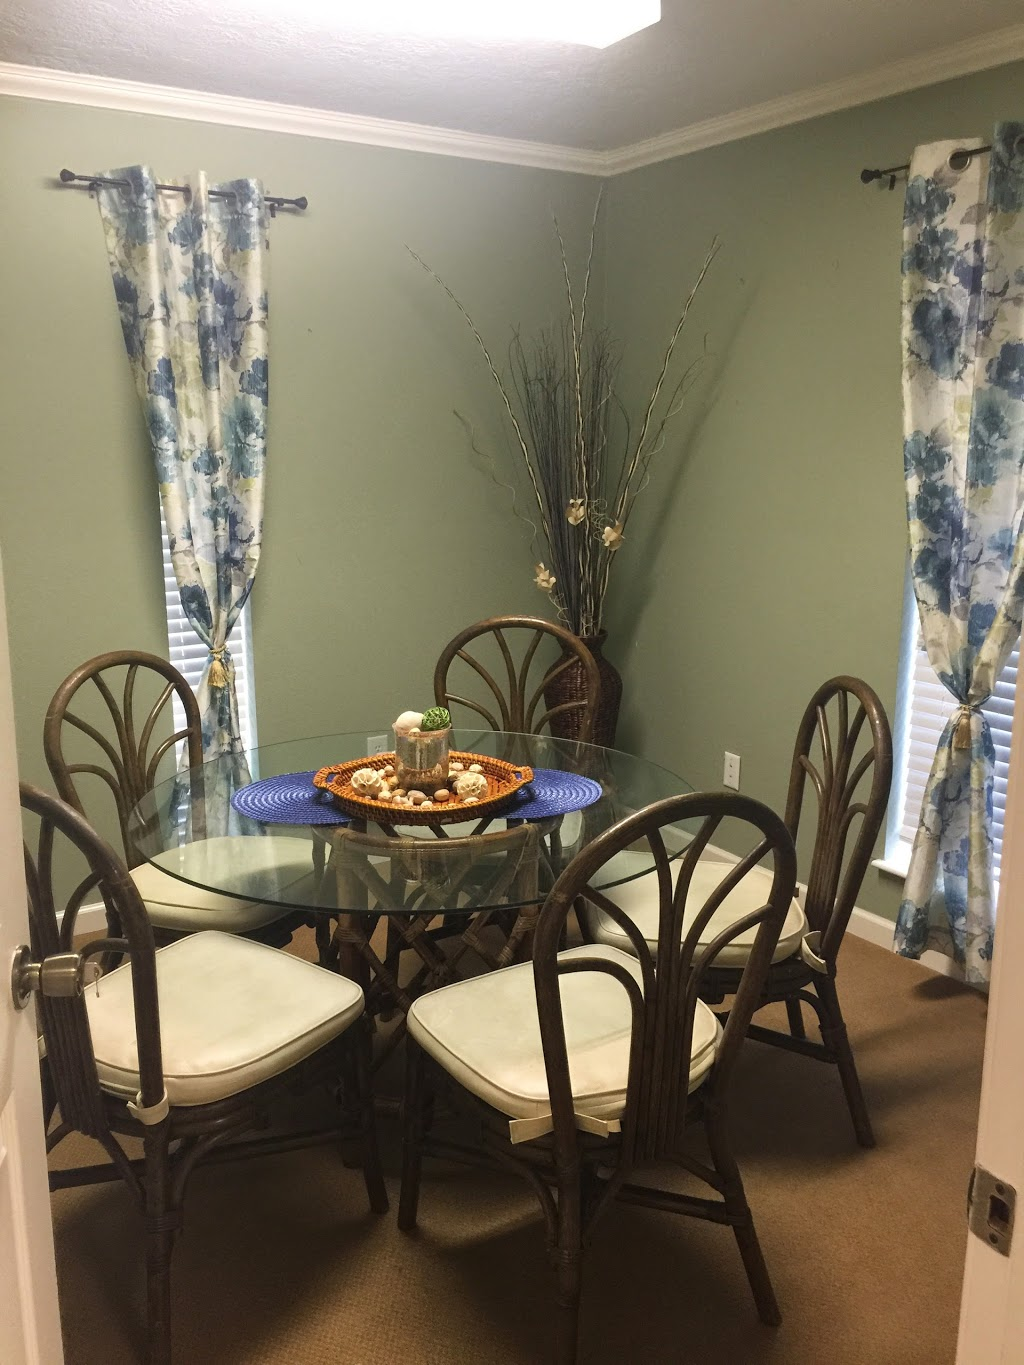 Galveston County Property Management and Sales - real estate agency    Photo 5 of 10   Address: 1501 6th St N, Texas City, TX 77590, USA   Phone: (888) 645-9994